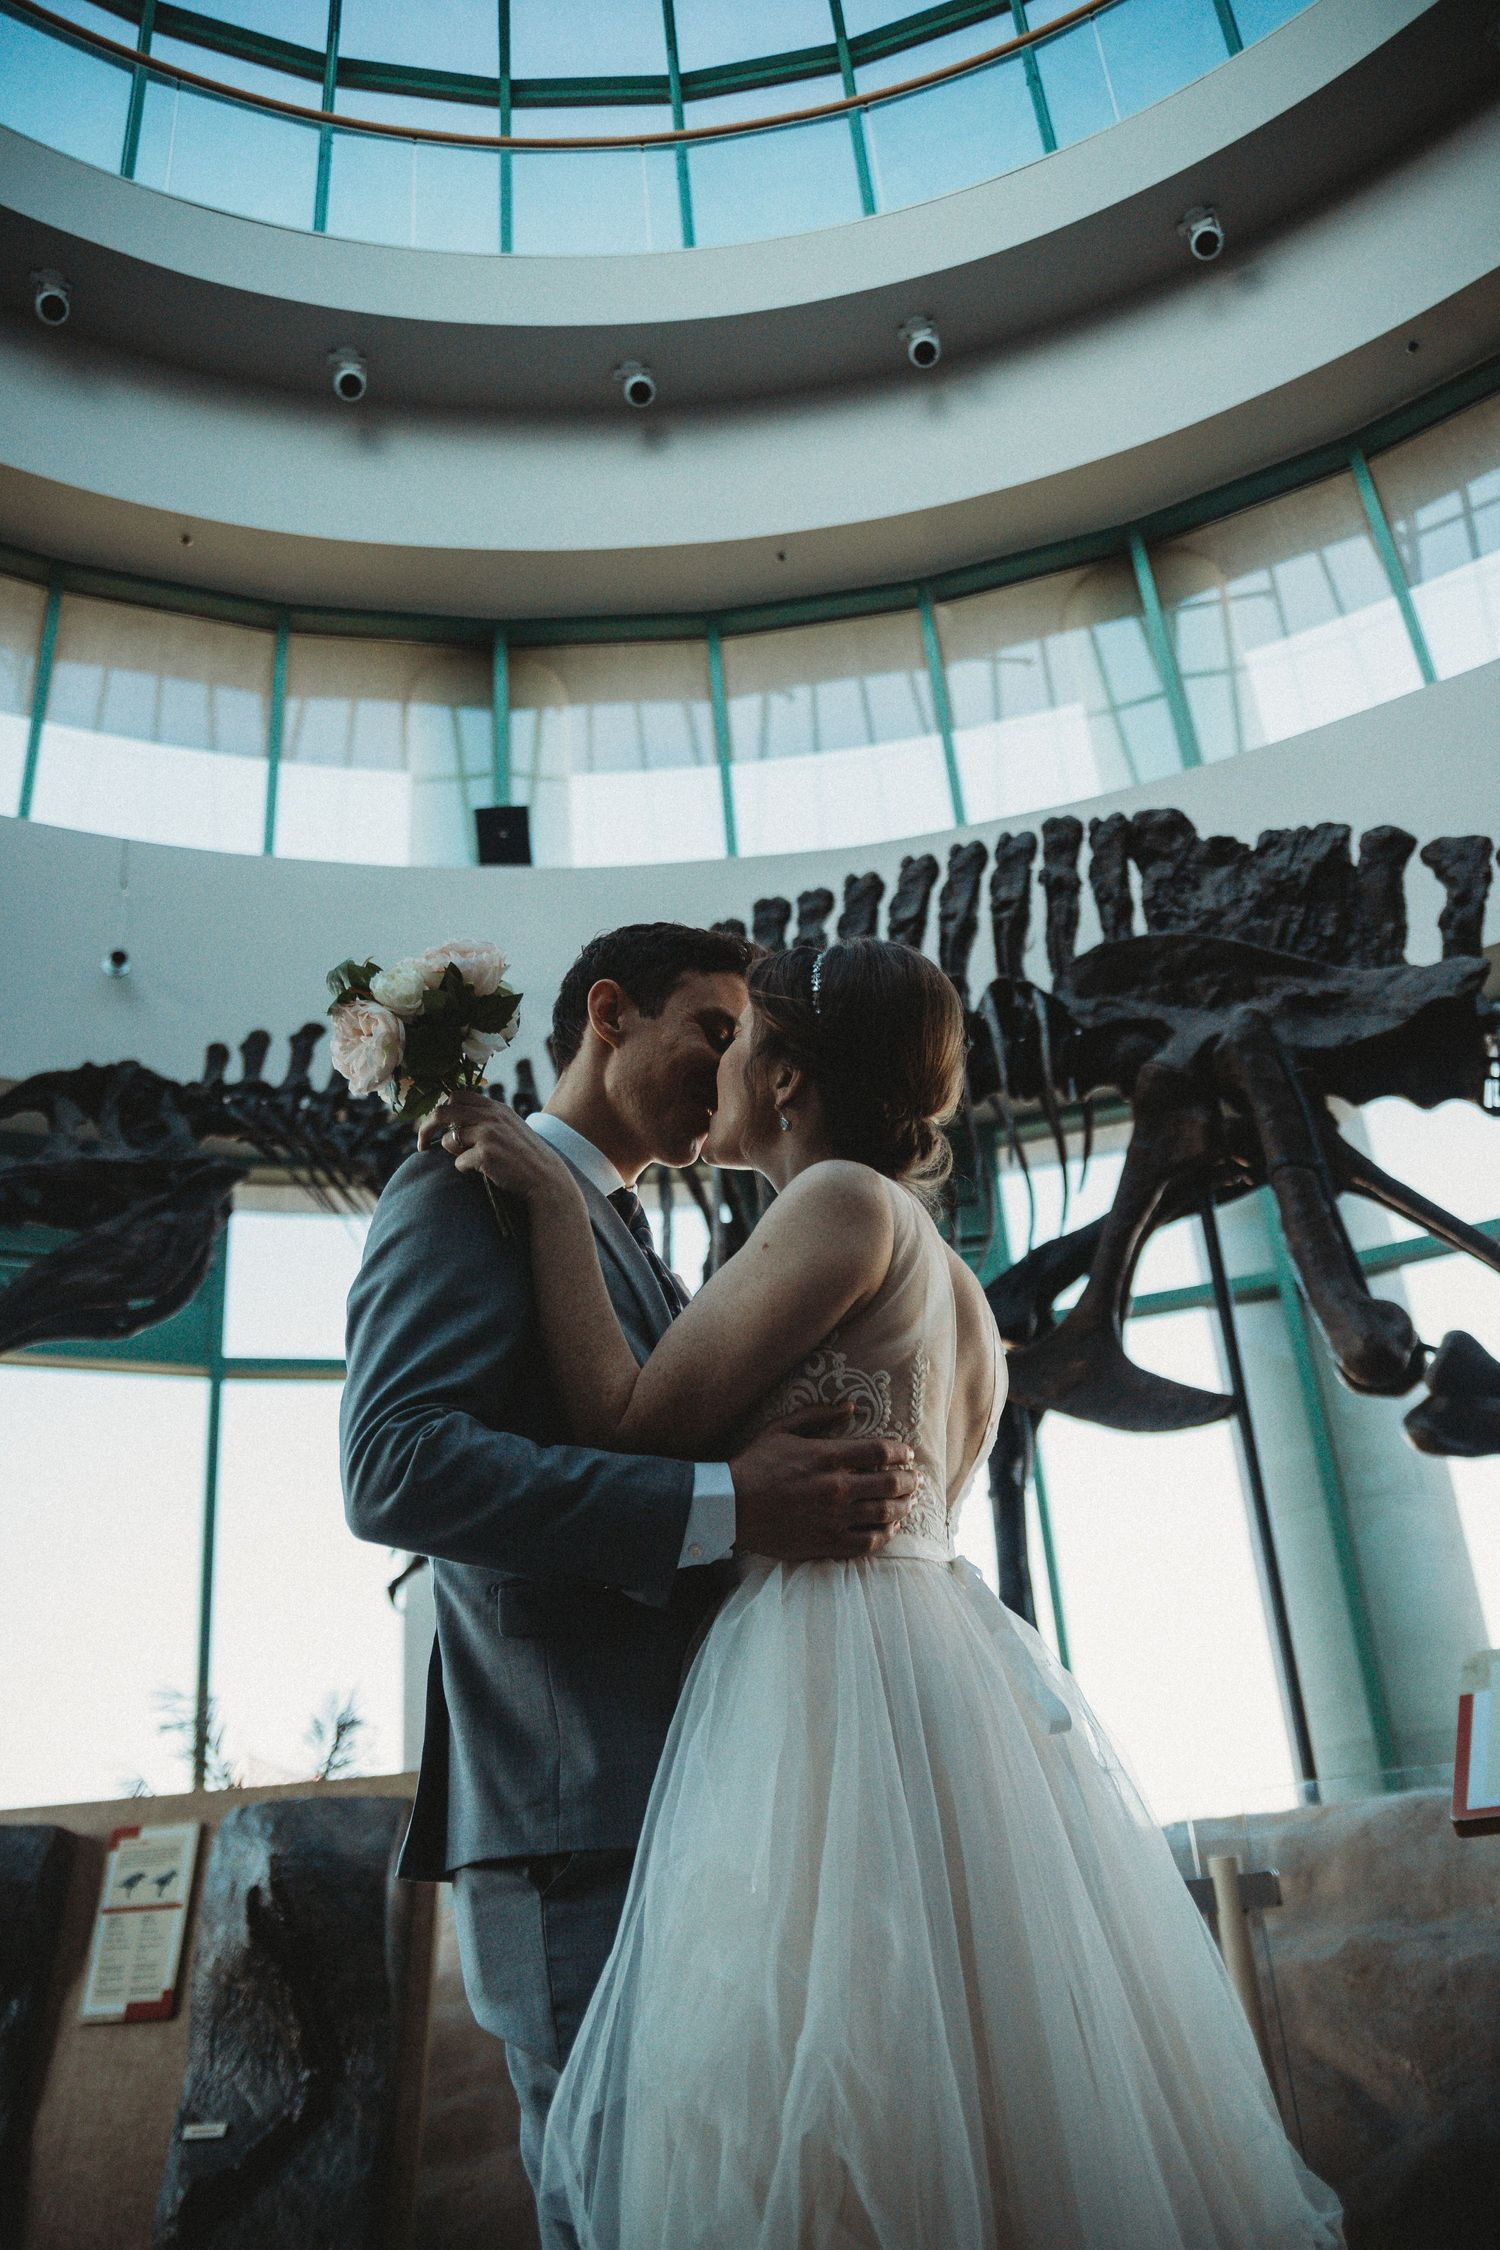 top of dome visible while bride and groom kiss passionately